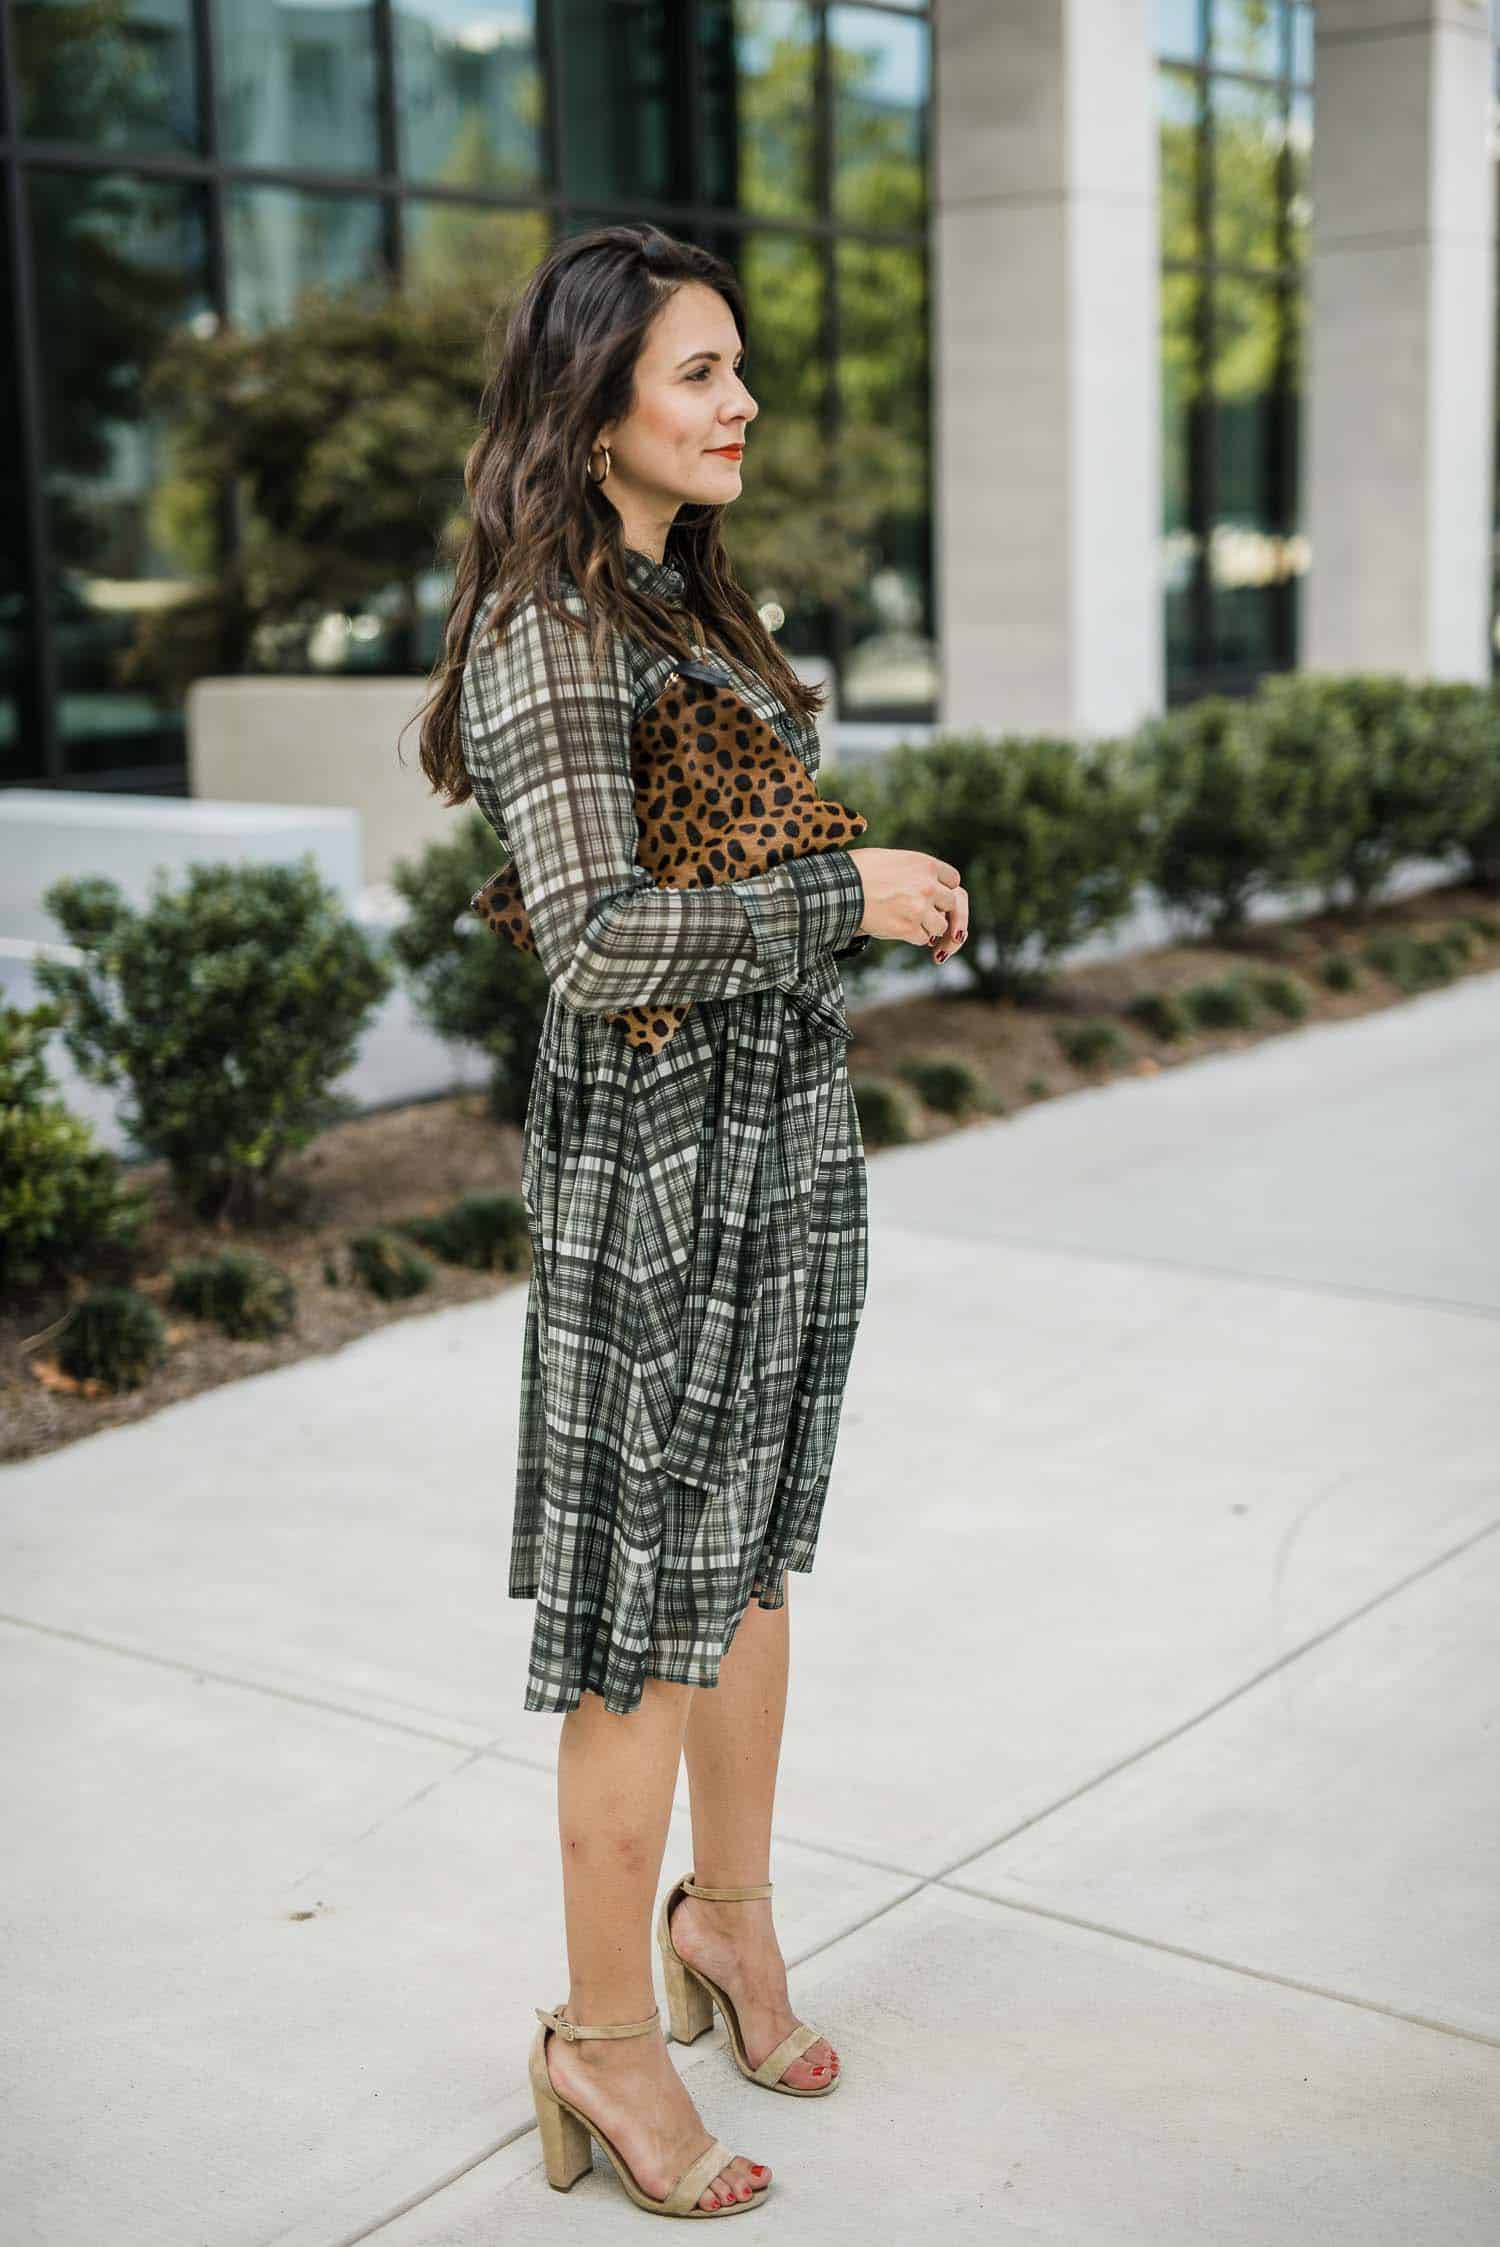 plaid shirtdress, Gal Meets Glam Jessie Dress - My Style Vita